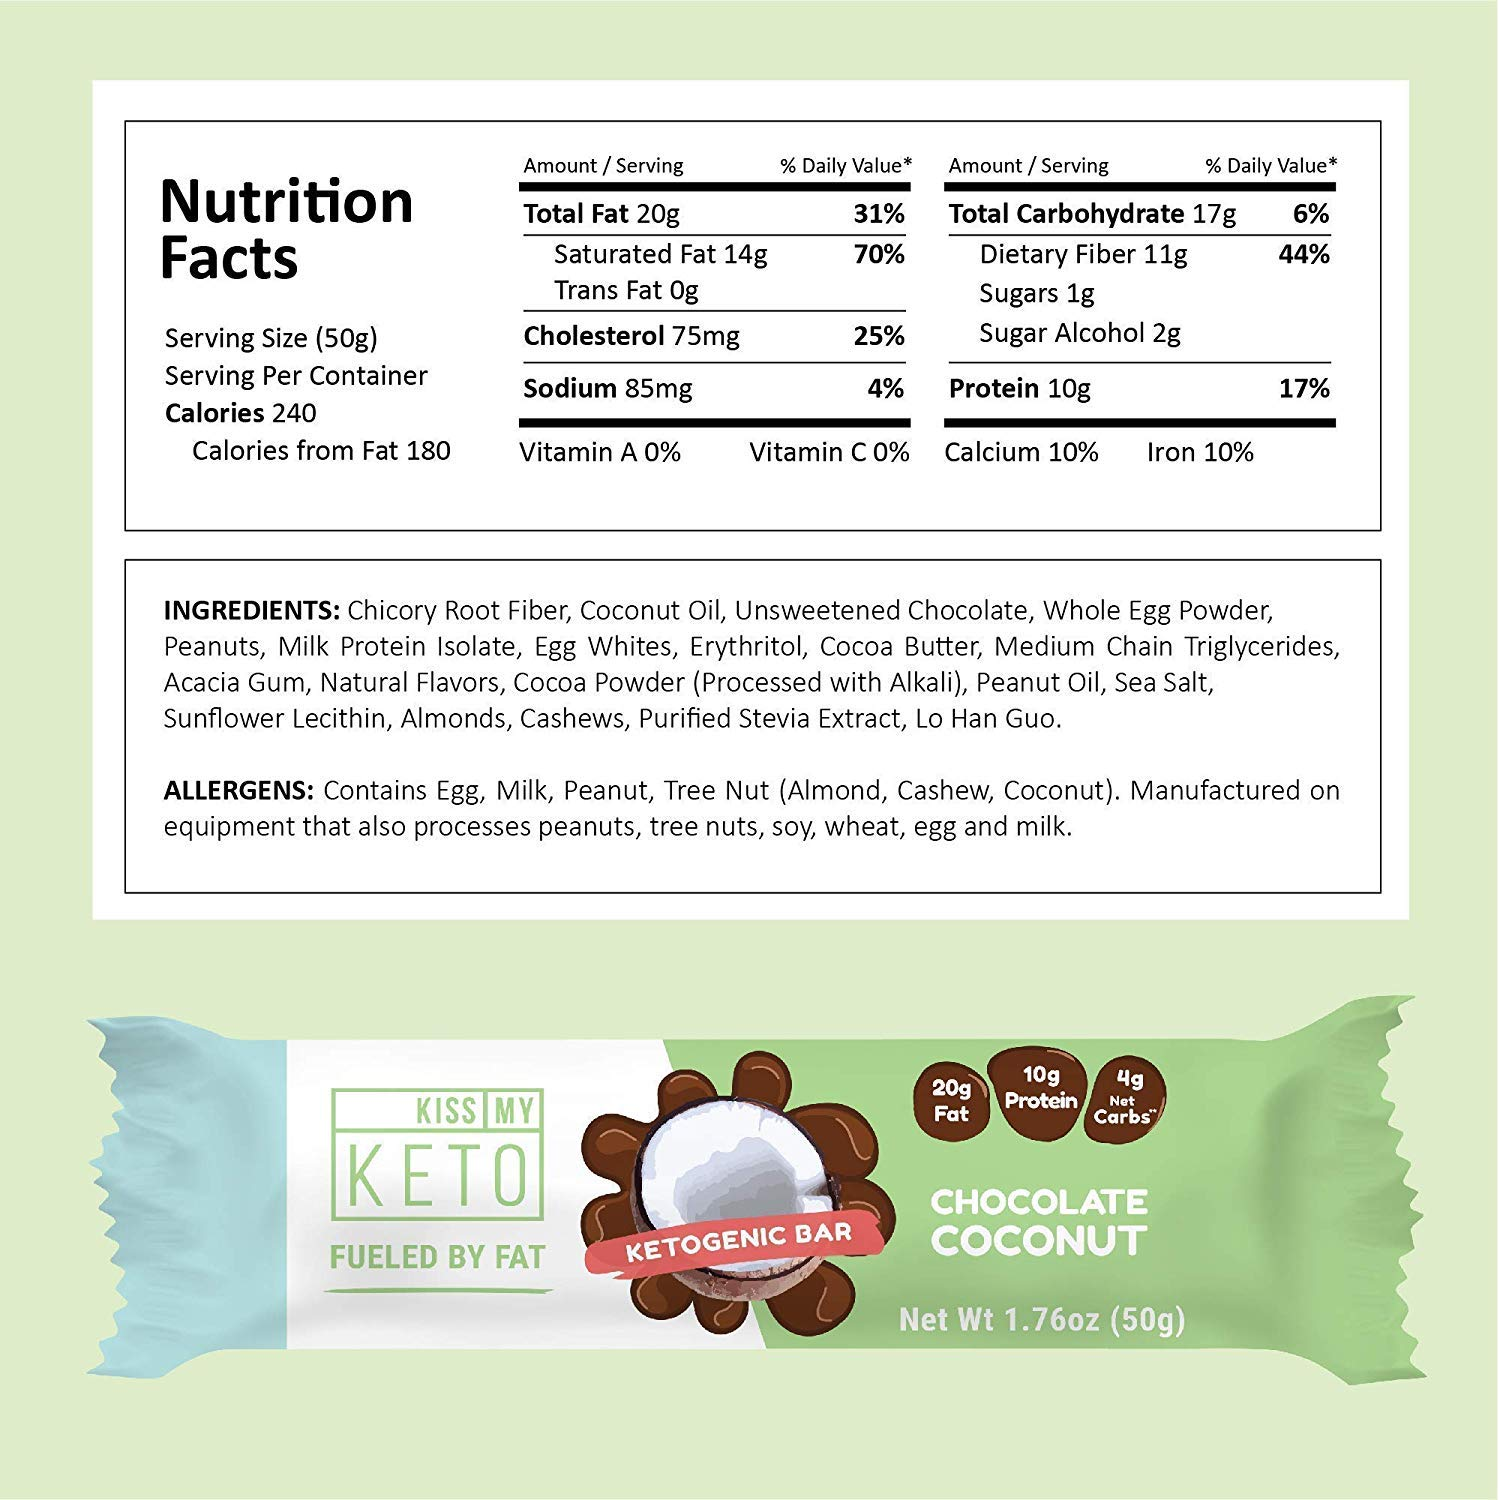 Kiss My Keto Snacks Keto Bars - Keto Chocolate Variety Pack (12) Nutritional Keto Food Bars, Paleo, Low Carb/Glycemic Keto Friendly Foods, Natural On-The-Go Snacks, Quality Fat Bars 3g Net Carbs by Kiss My Keto (Image #5)